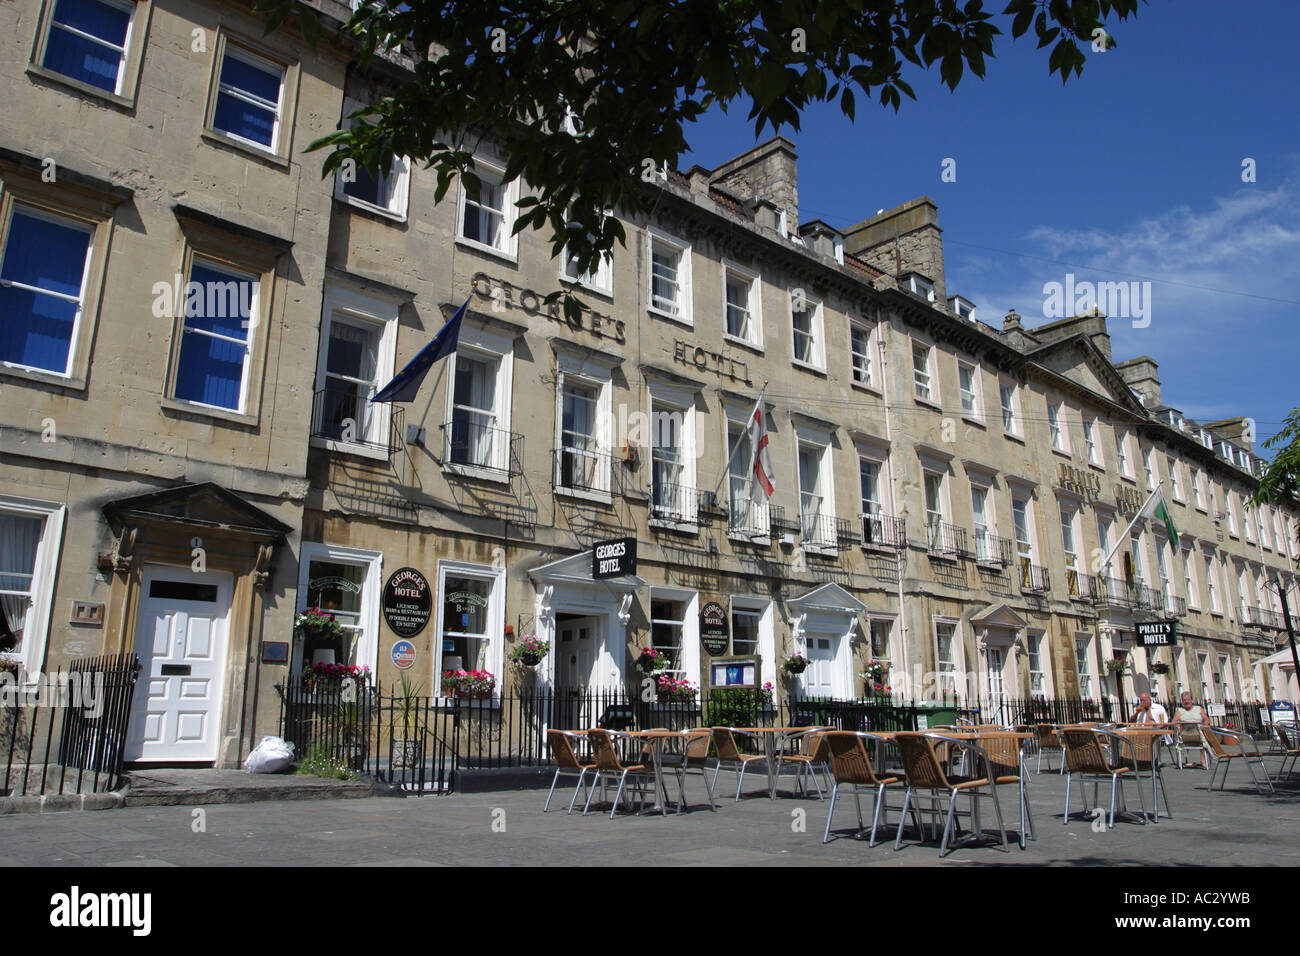 Bath England the Georges Hotel with open air cafe tables and chairs on pavement Bath Somerset UK - Stock Image